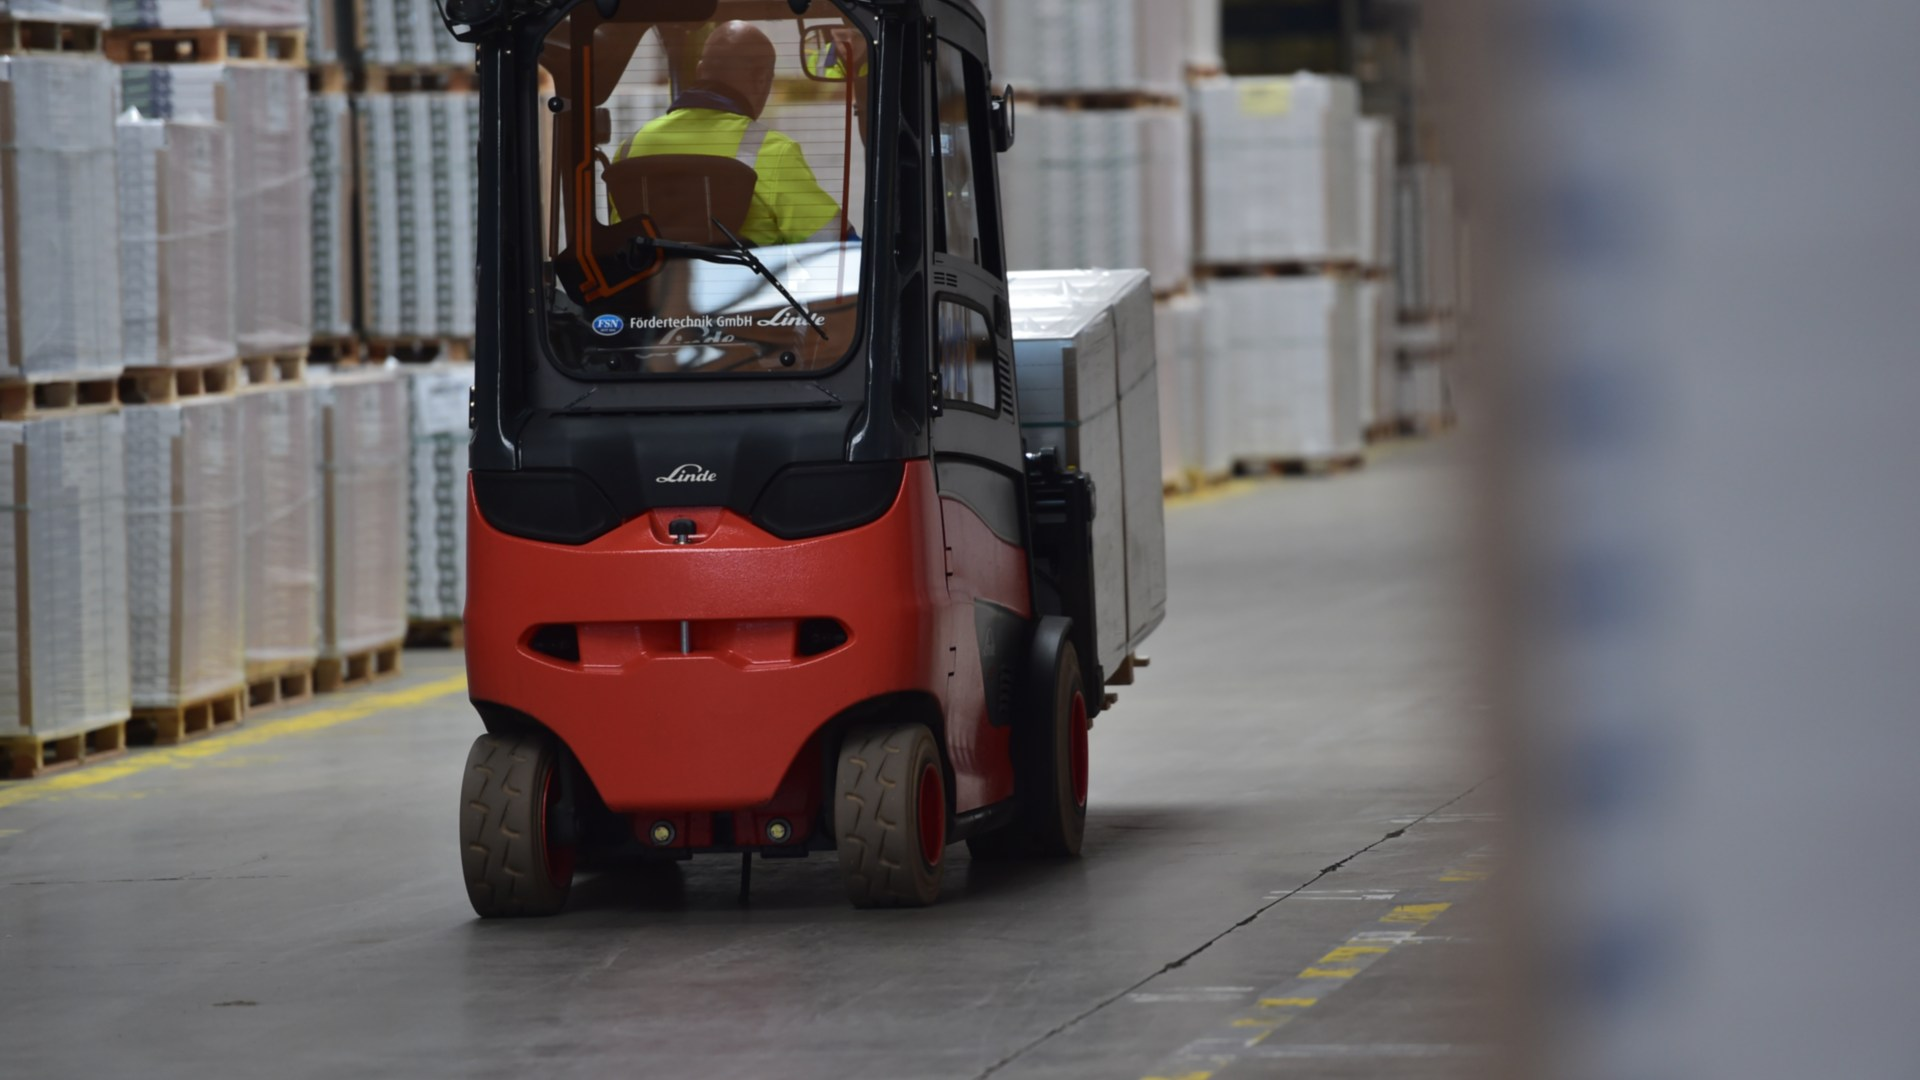 Linde electric forklift truck in the Egger warehouse